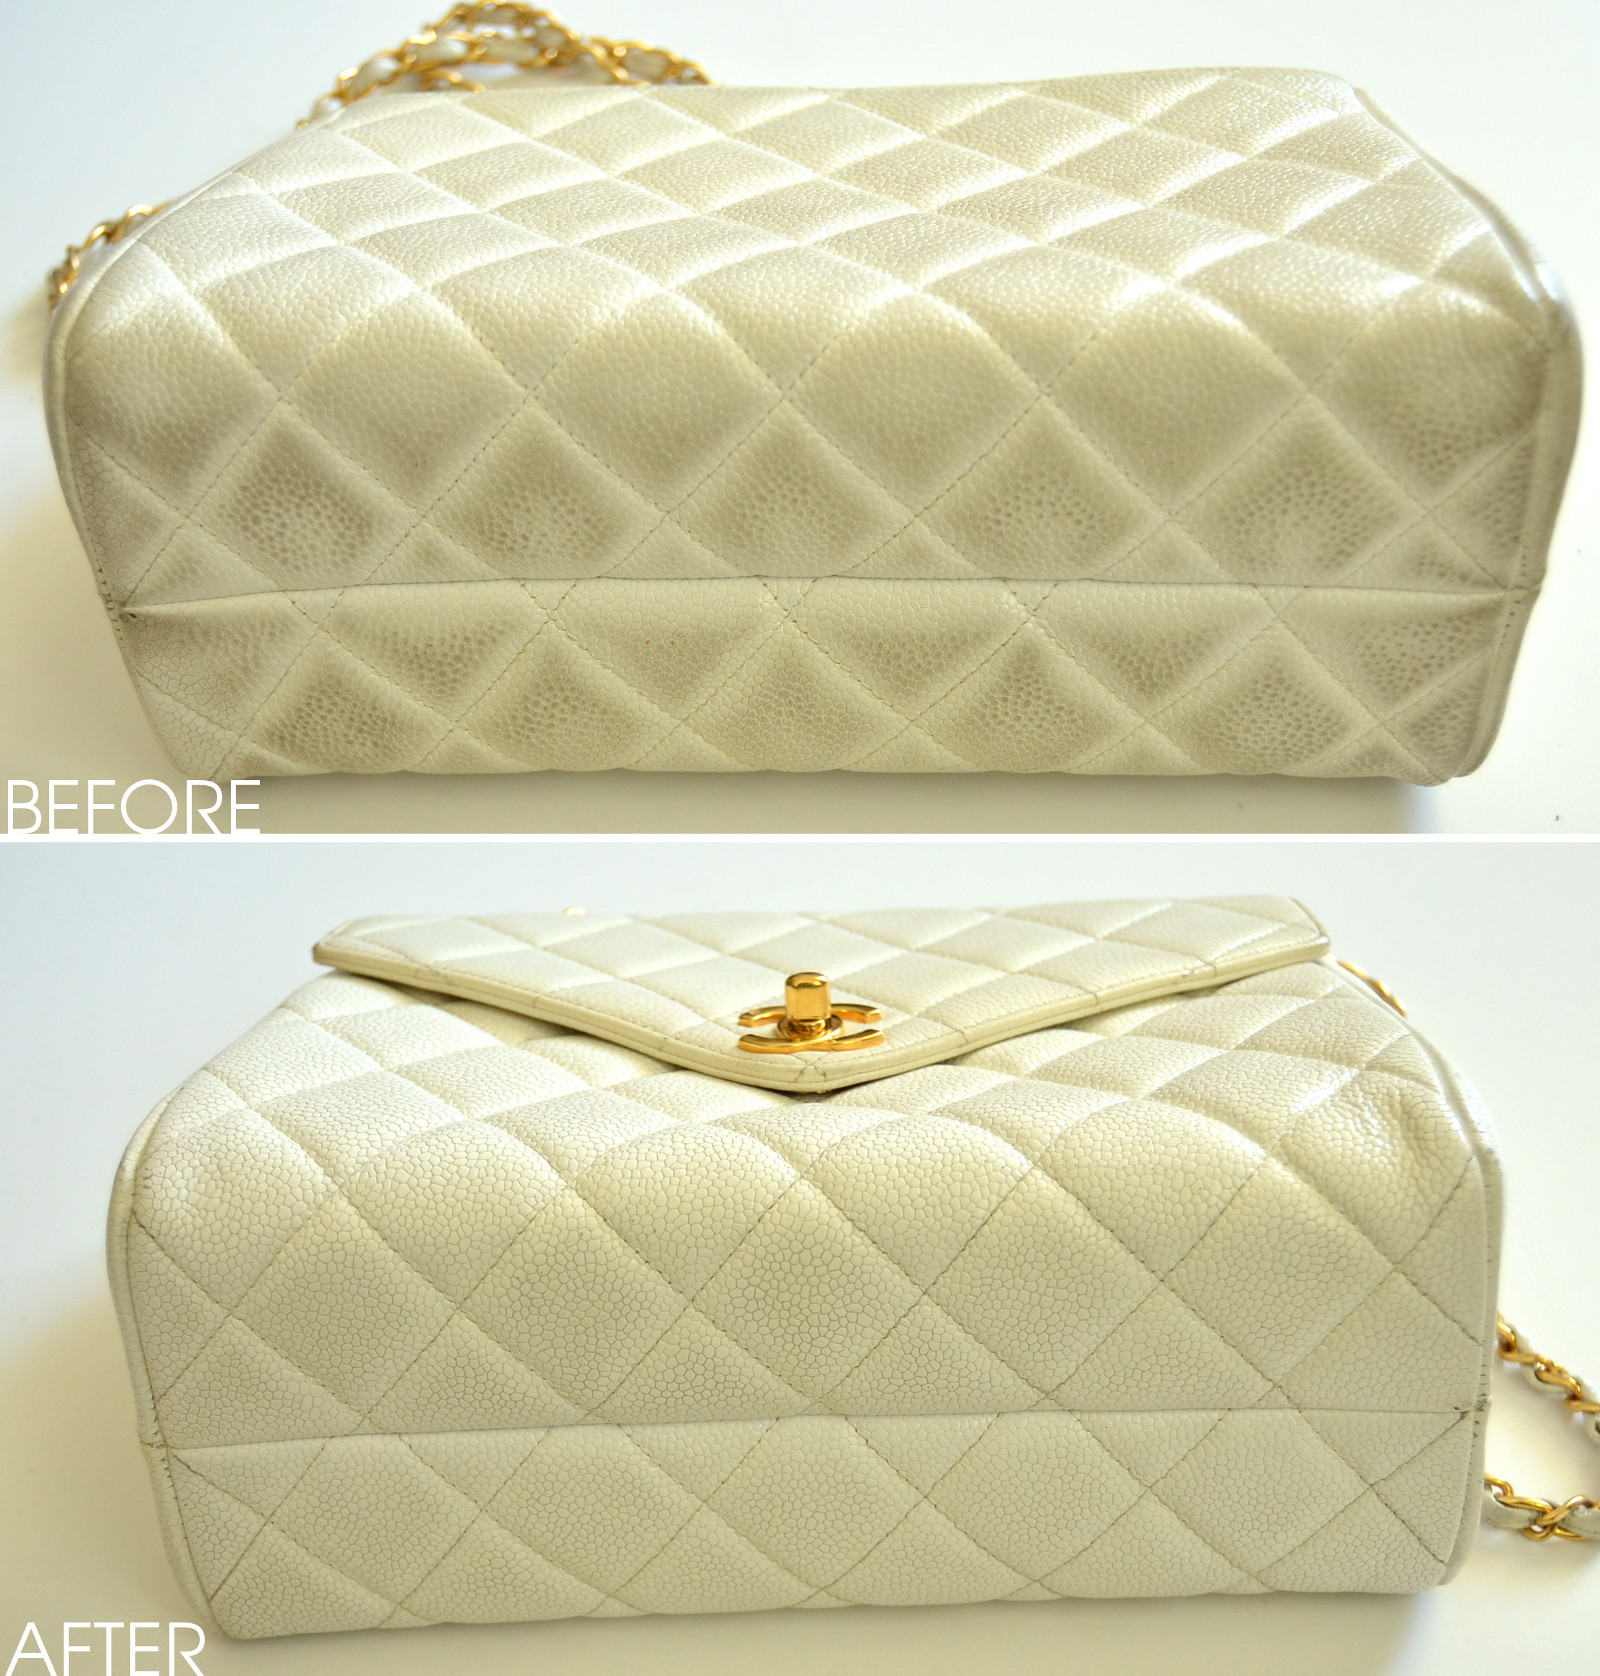 How to remove stains from chanel caviar leather lollipuff How to get stains out of white leather